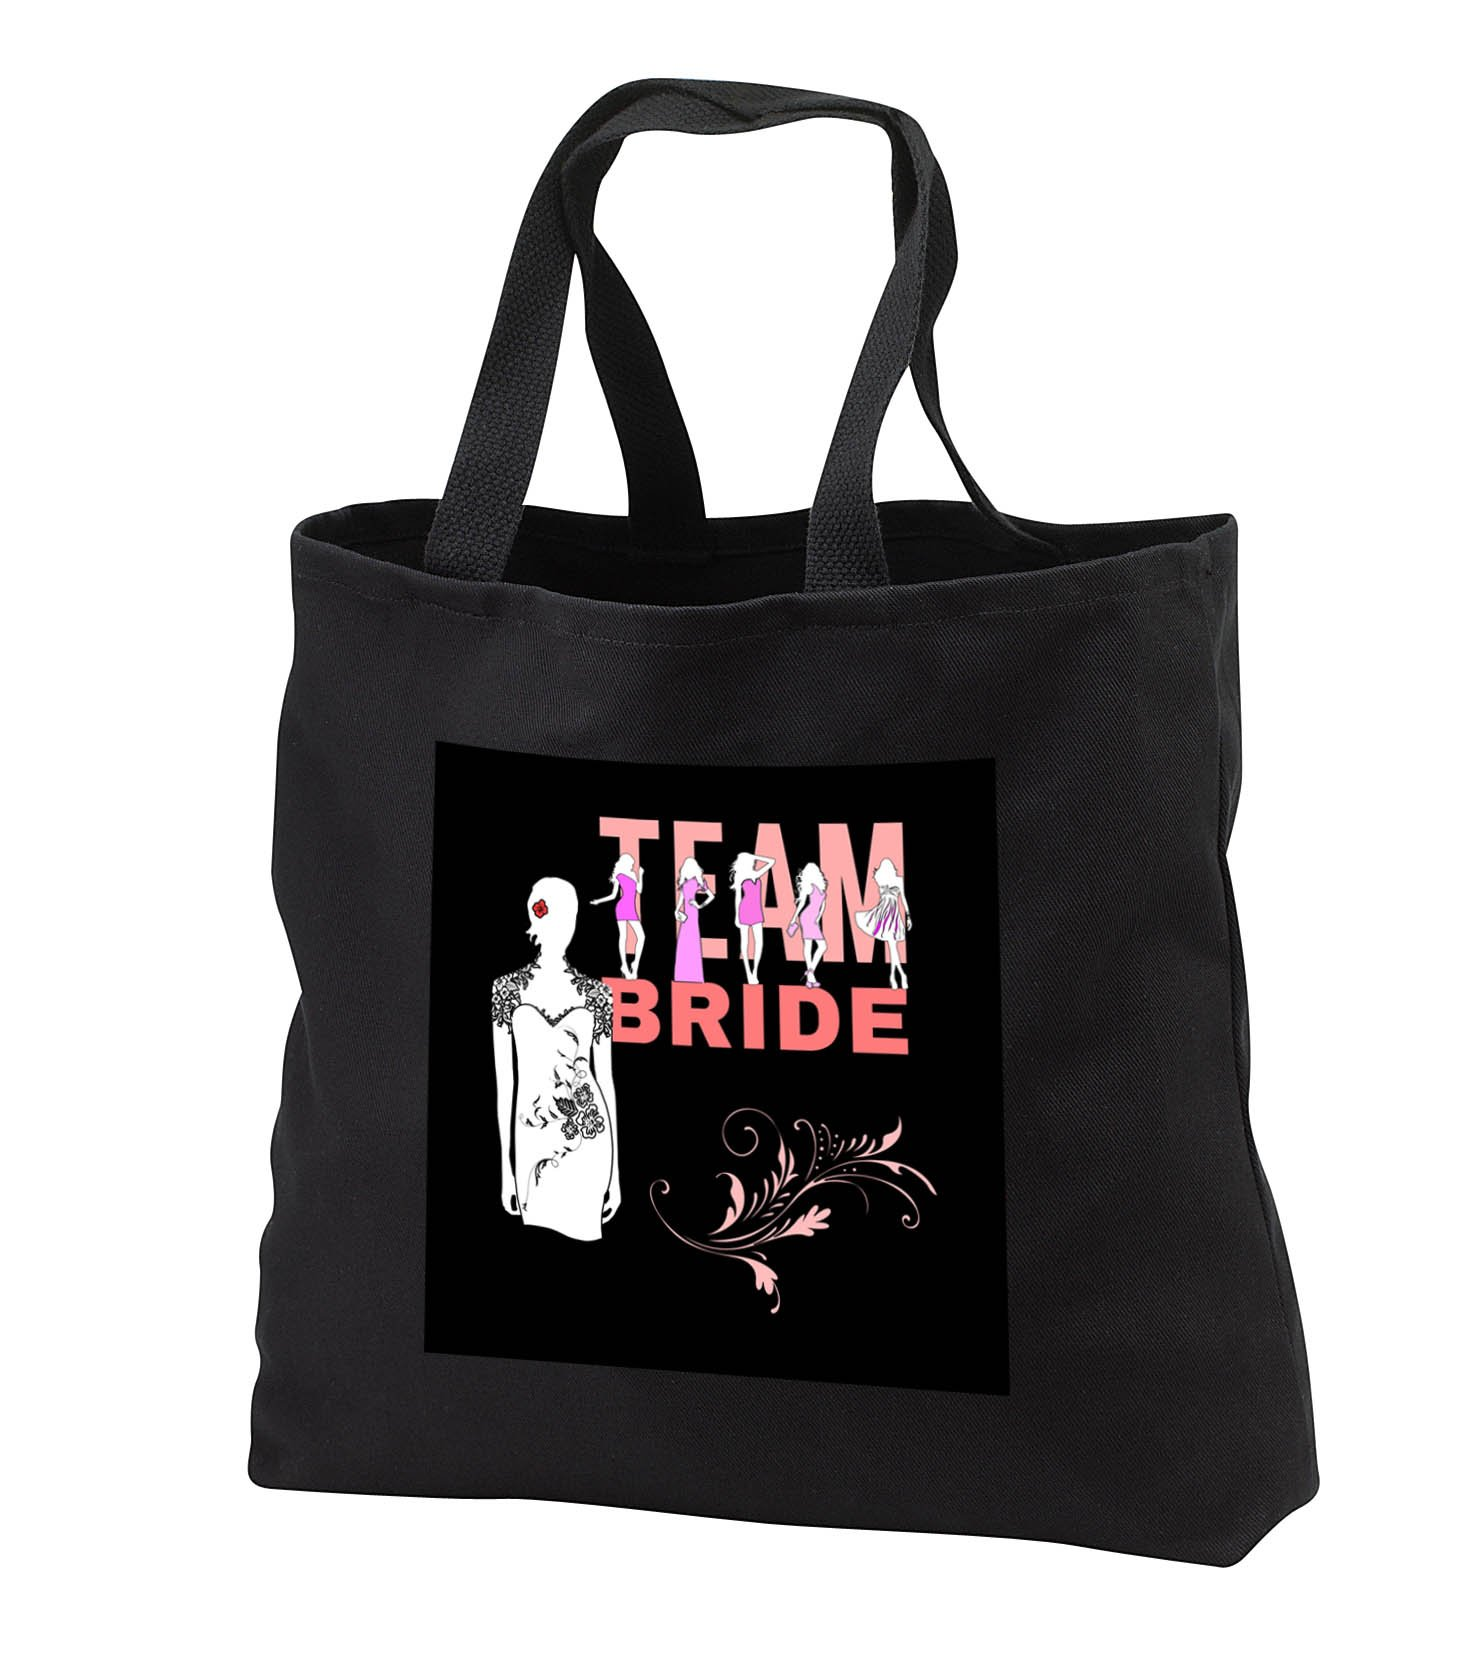 Alexis Design - Wedding - Team bride, girls, violet dresses, bride in the white dress on black - Tote Bags - Black Tote Bag JUMBO 20w x 15h x 5d (tb_283766_3)